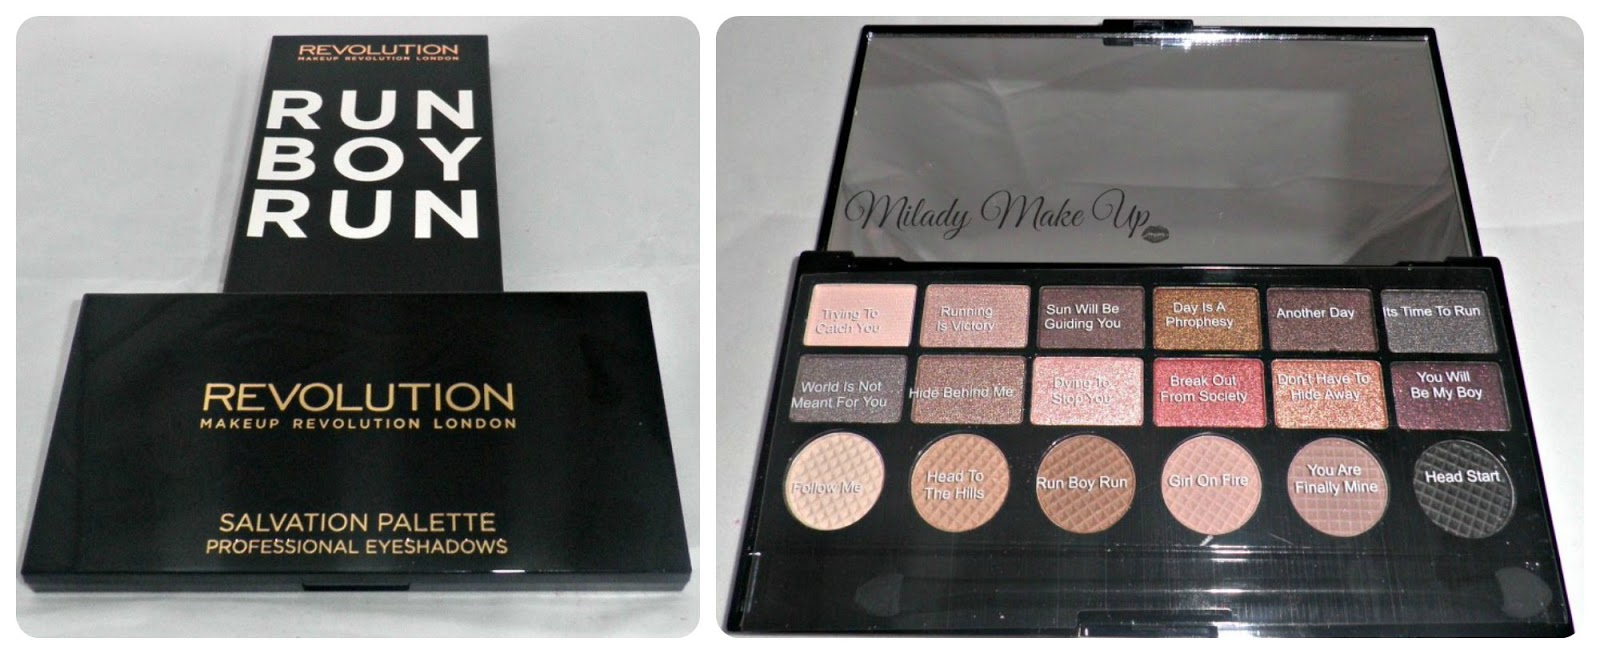 Run boy run makeup revolution palette